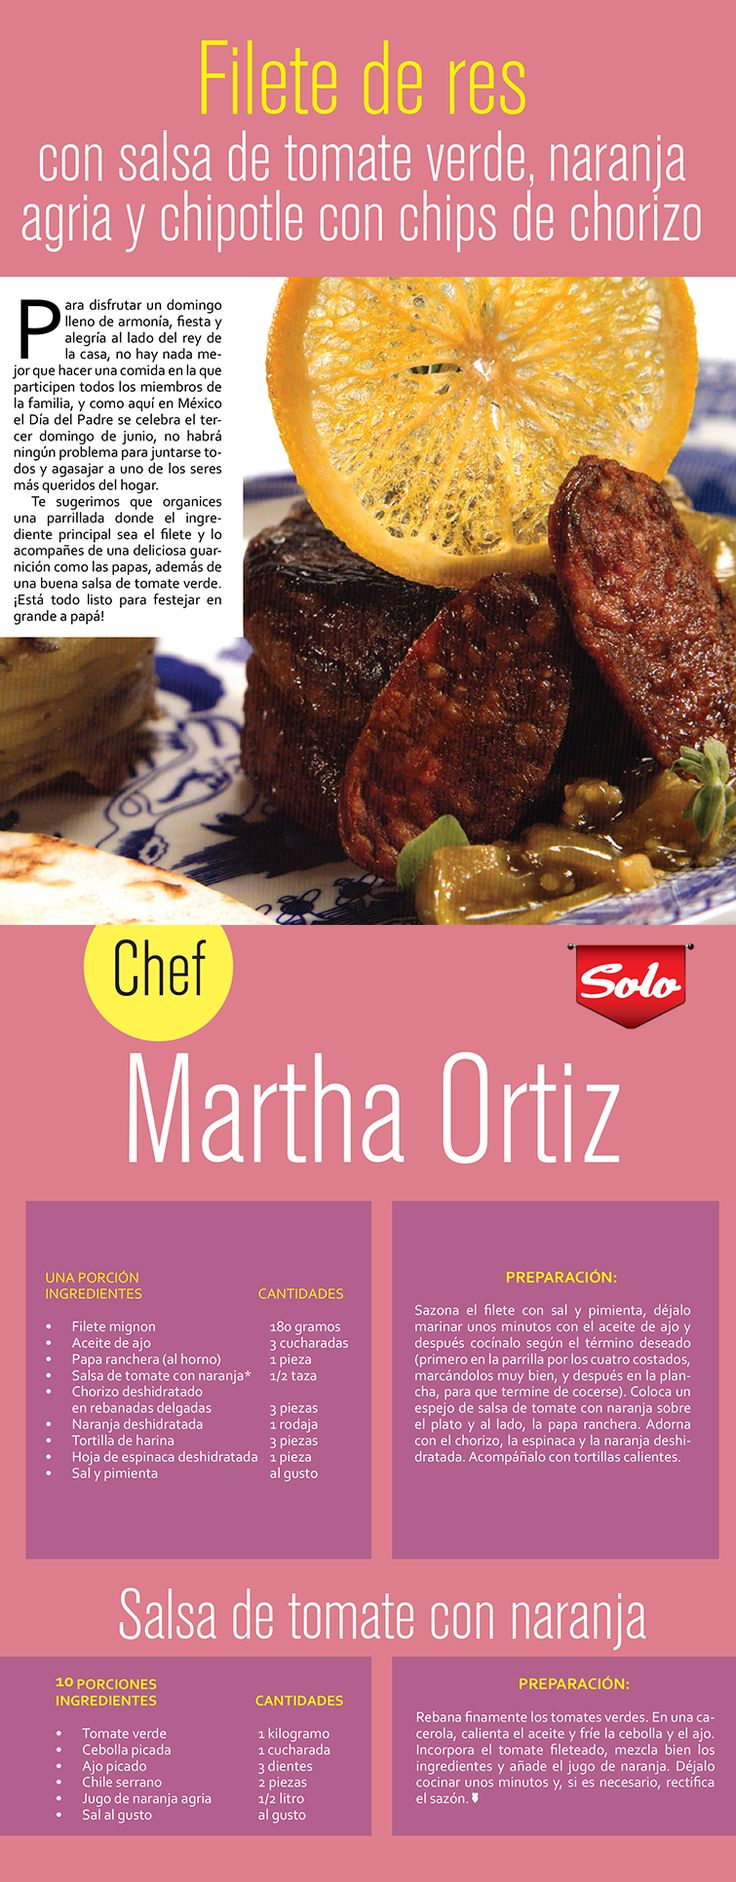 Filete de res de la chef Martha Ortiz